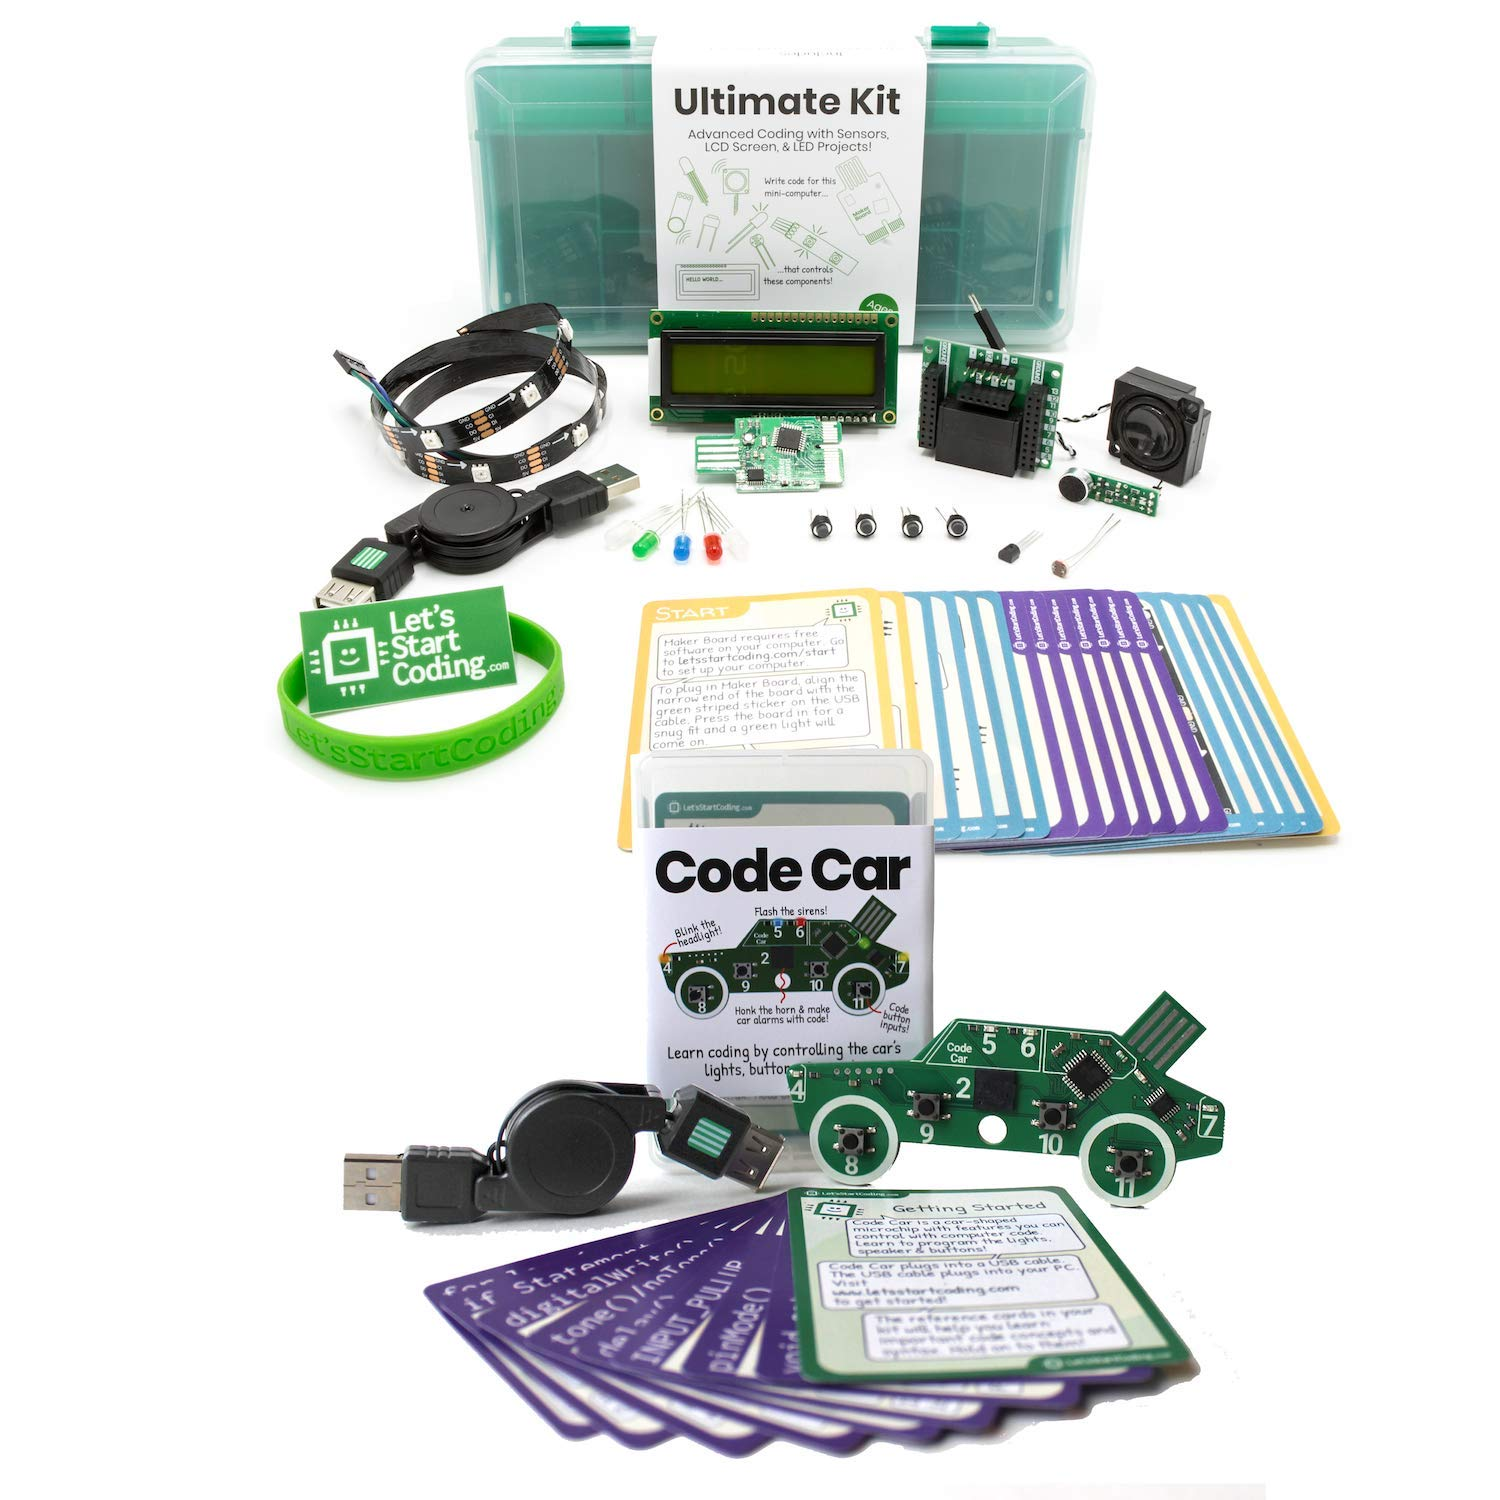 Bundle: Ultimate Coding Kit + Code Car. Great Gift for Kids 8 - 13. Bundle and Save!